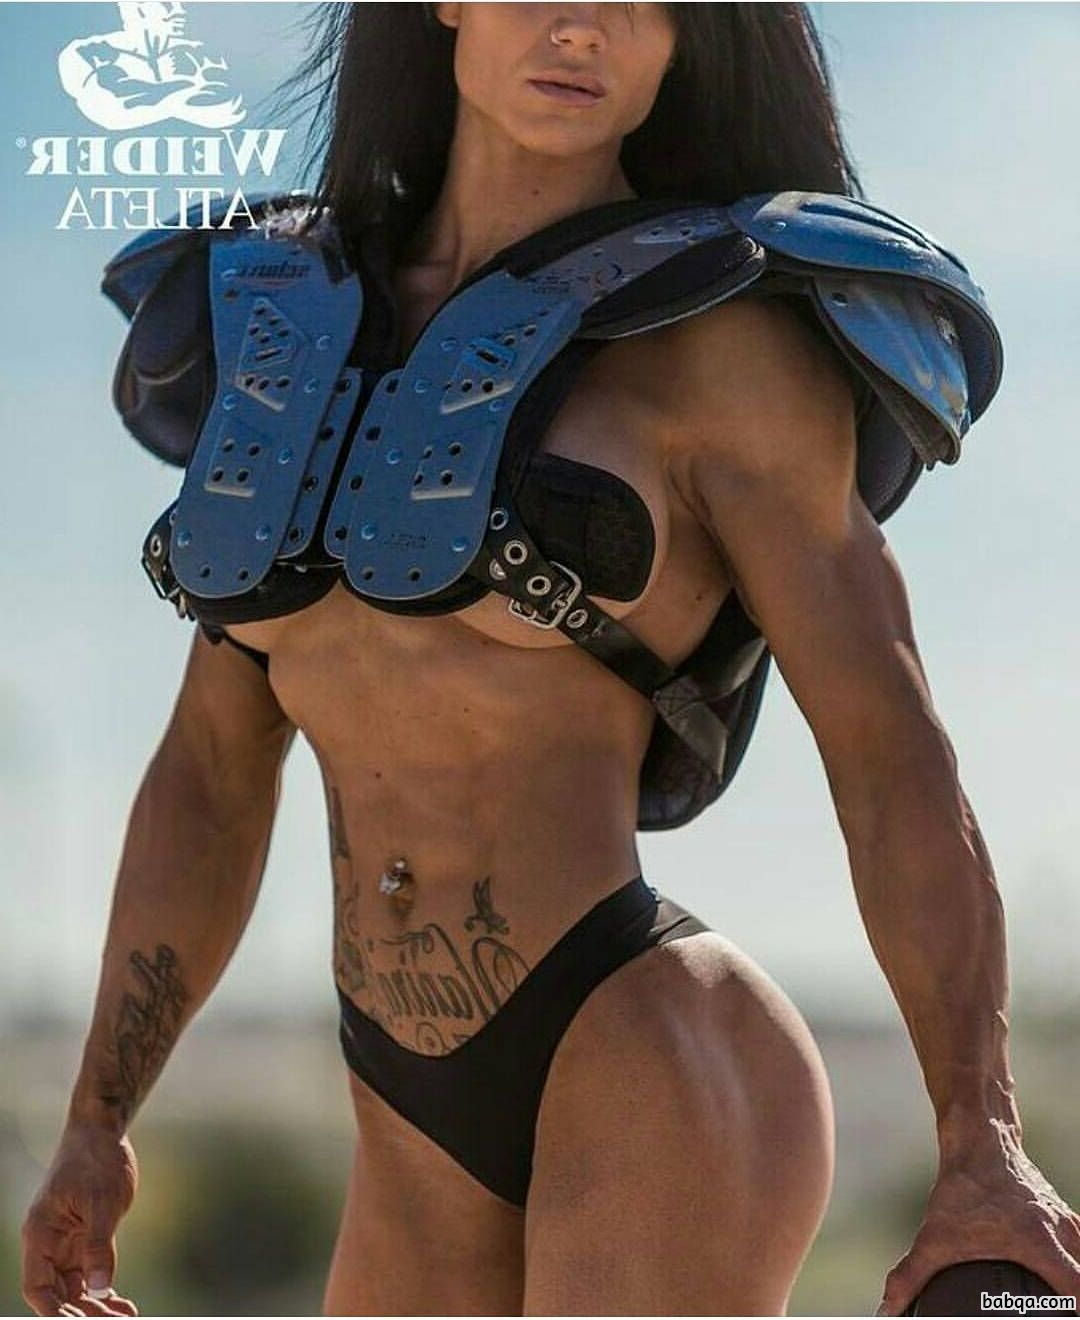 awesome babe with muscle body and toned biceps pic from facebook